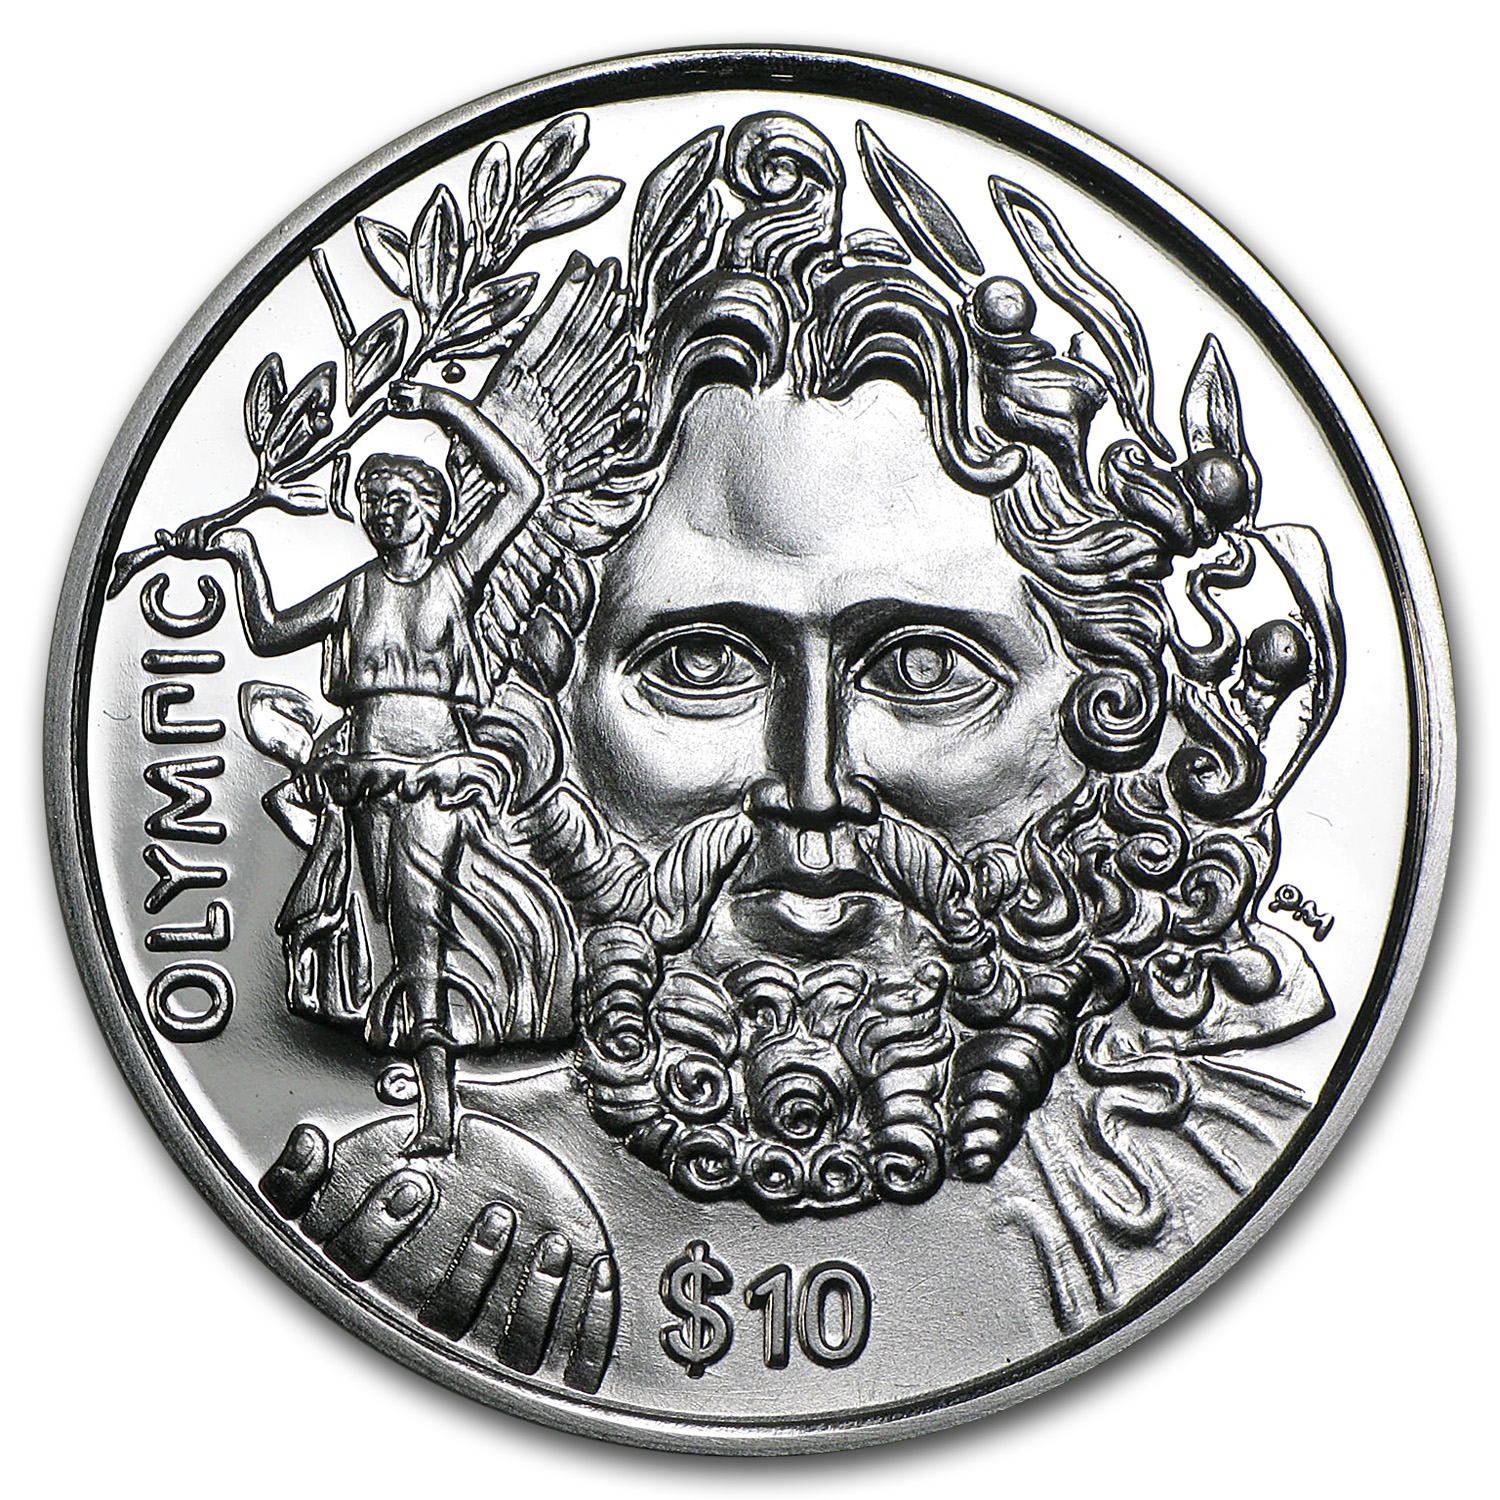 2013 British Virgin Islands 1 oz Silver Zeus Proof